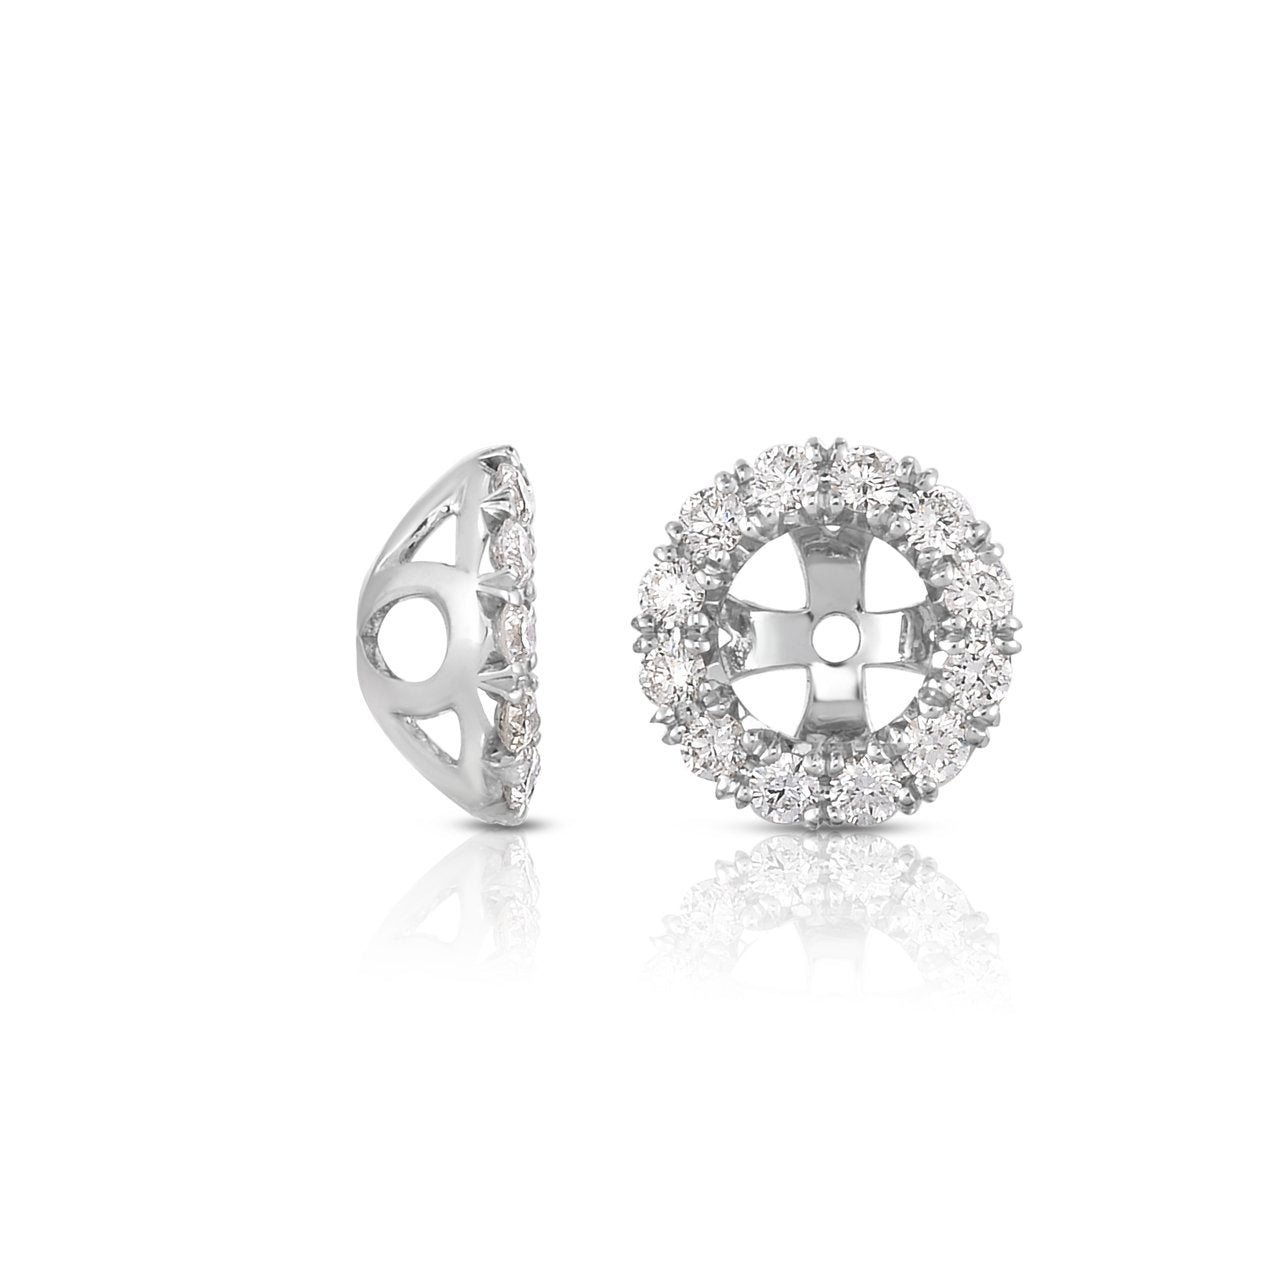 Sabel Collection 14K White Gold Round White Diamond Earring Jackets